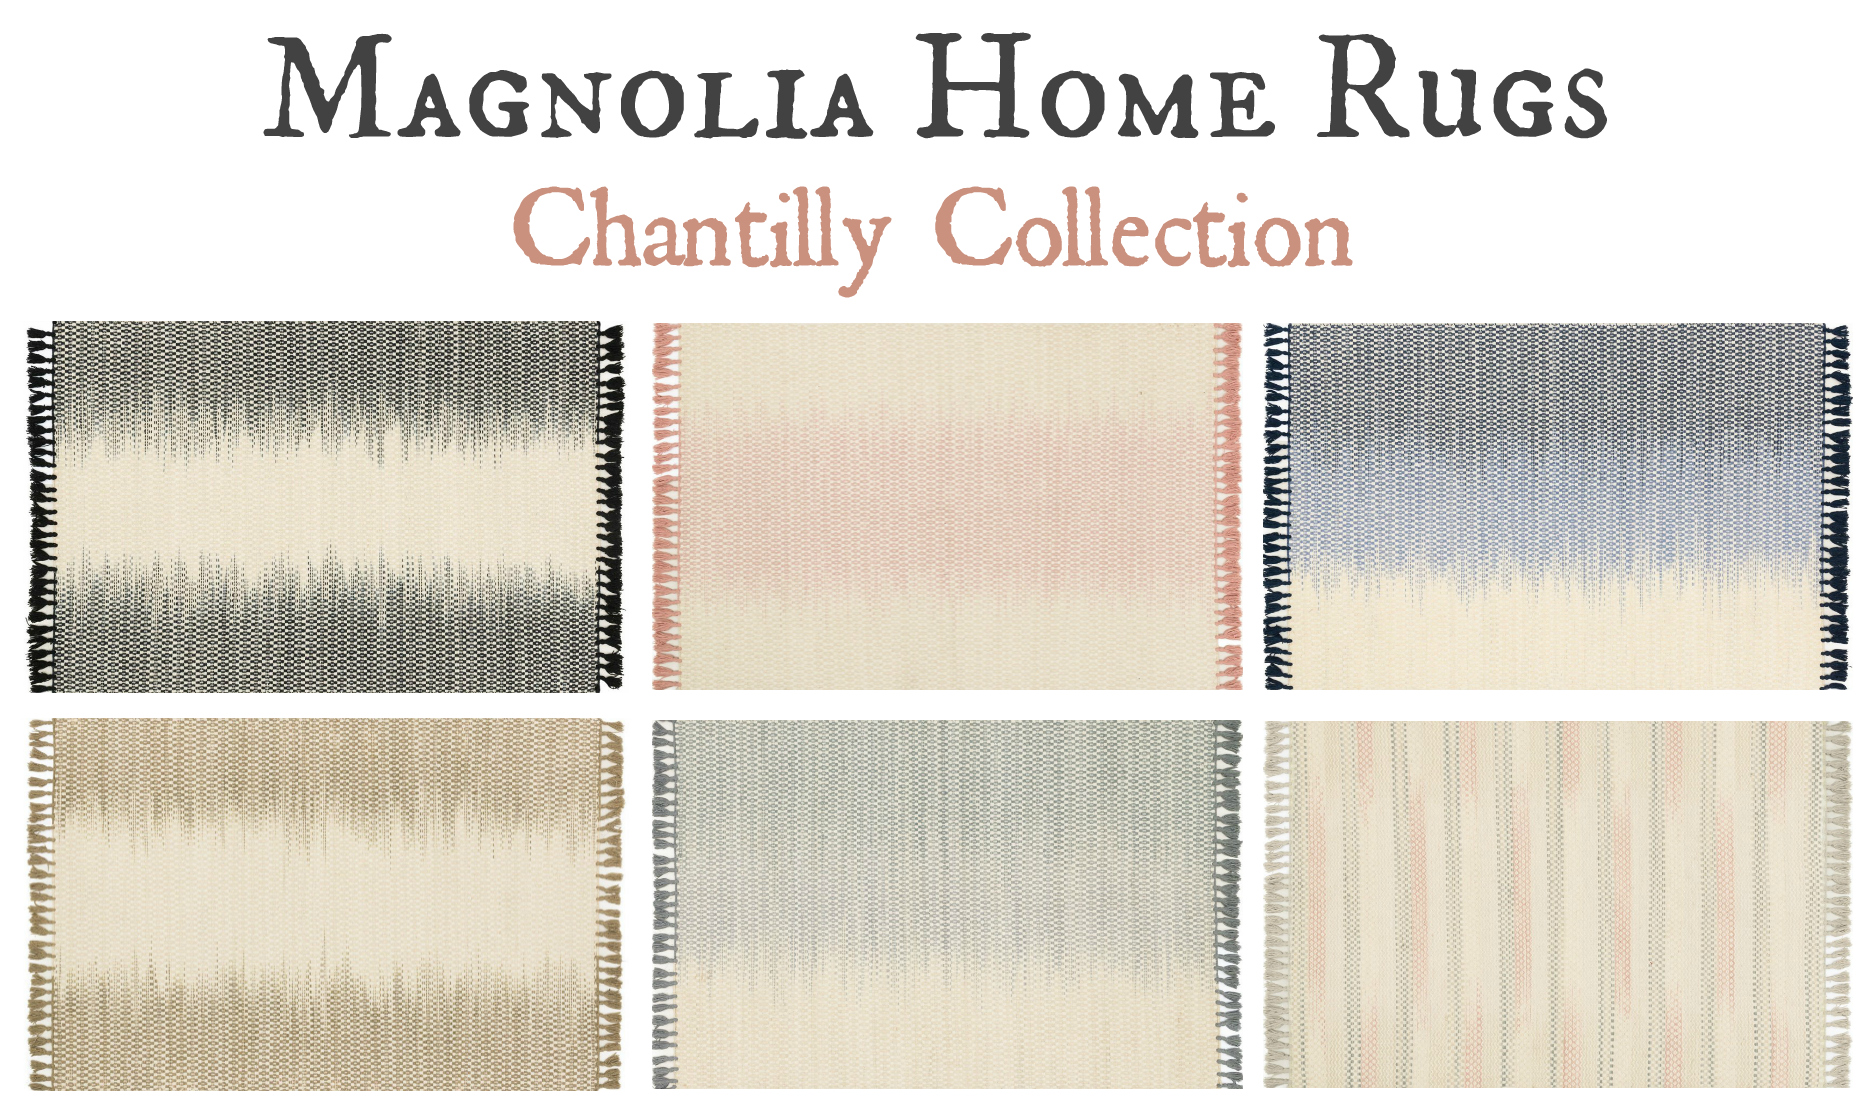 Magnolia Home Rugs Chantilly Collection